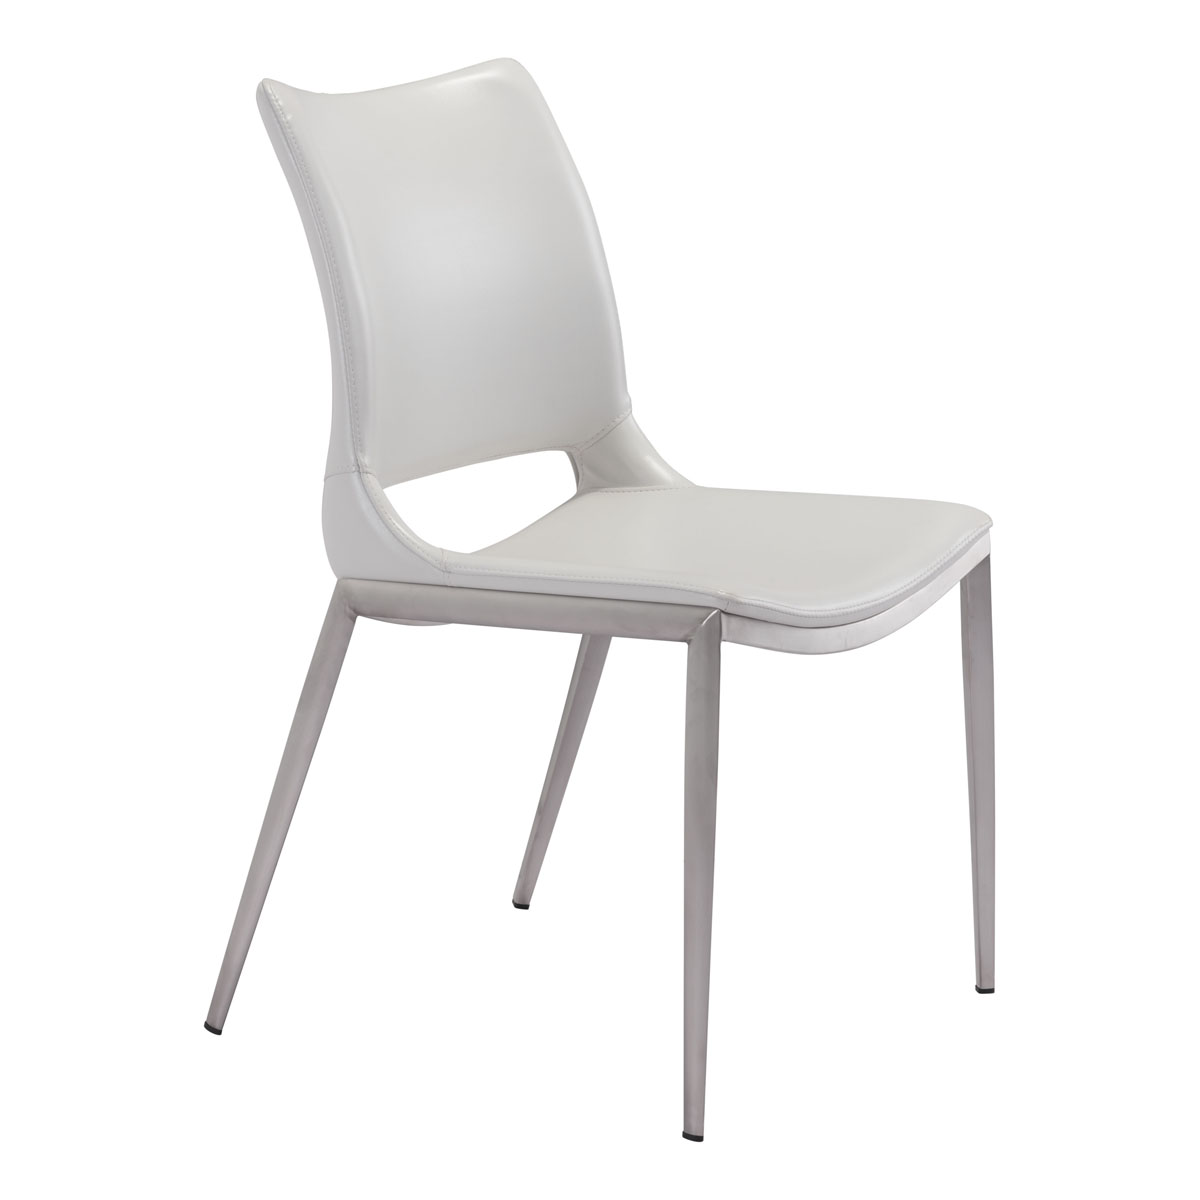 premium selection be975 8458a Ace Dining Chair White & Brushed Stainless Steel